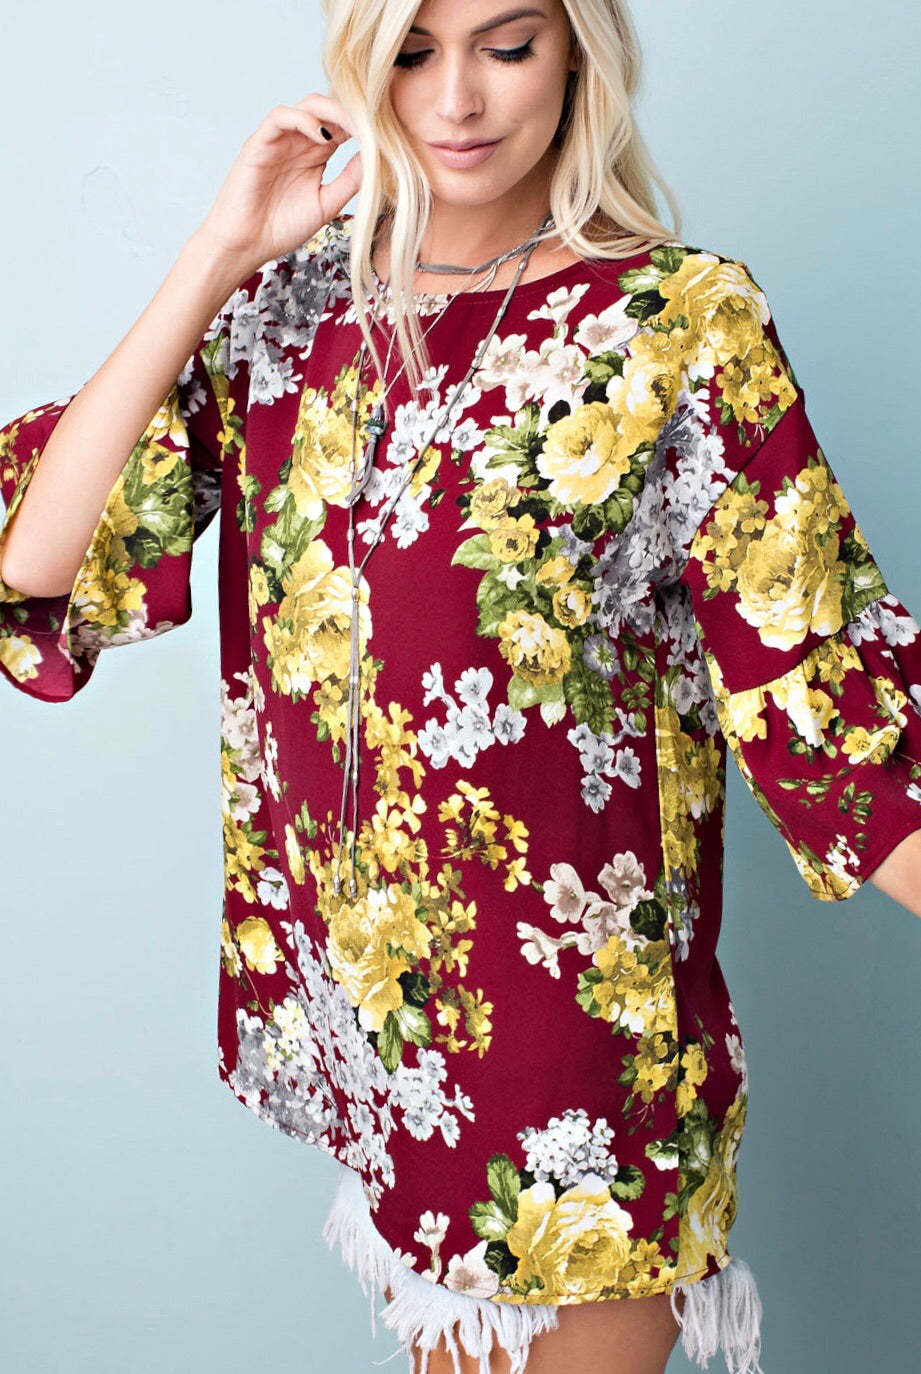 FLORAL WOVEN RUFFLED SLEEVED TOP